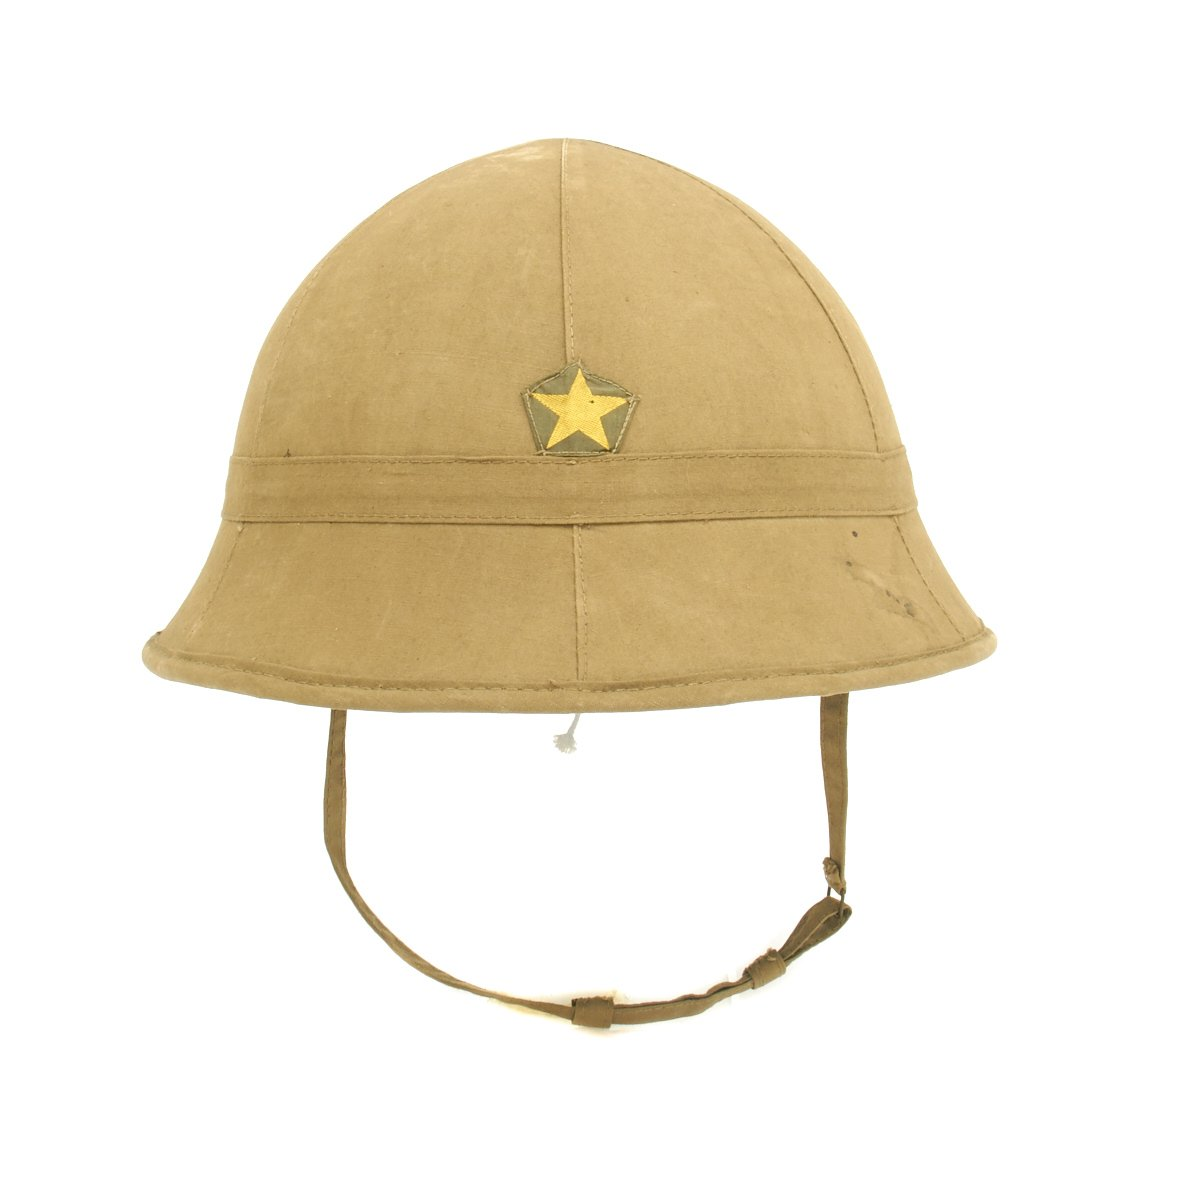 0e0711533cabc Original Imperial Japanese Army WWII Type 98 Sun Helmet - Excellent  Condition